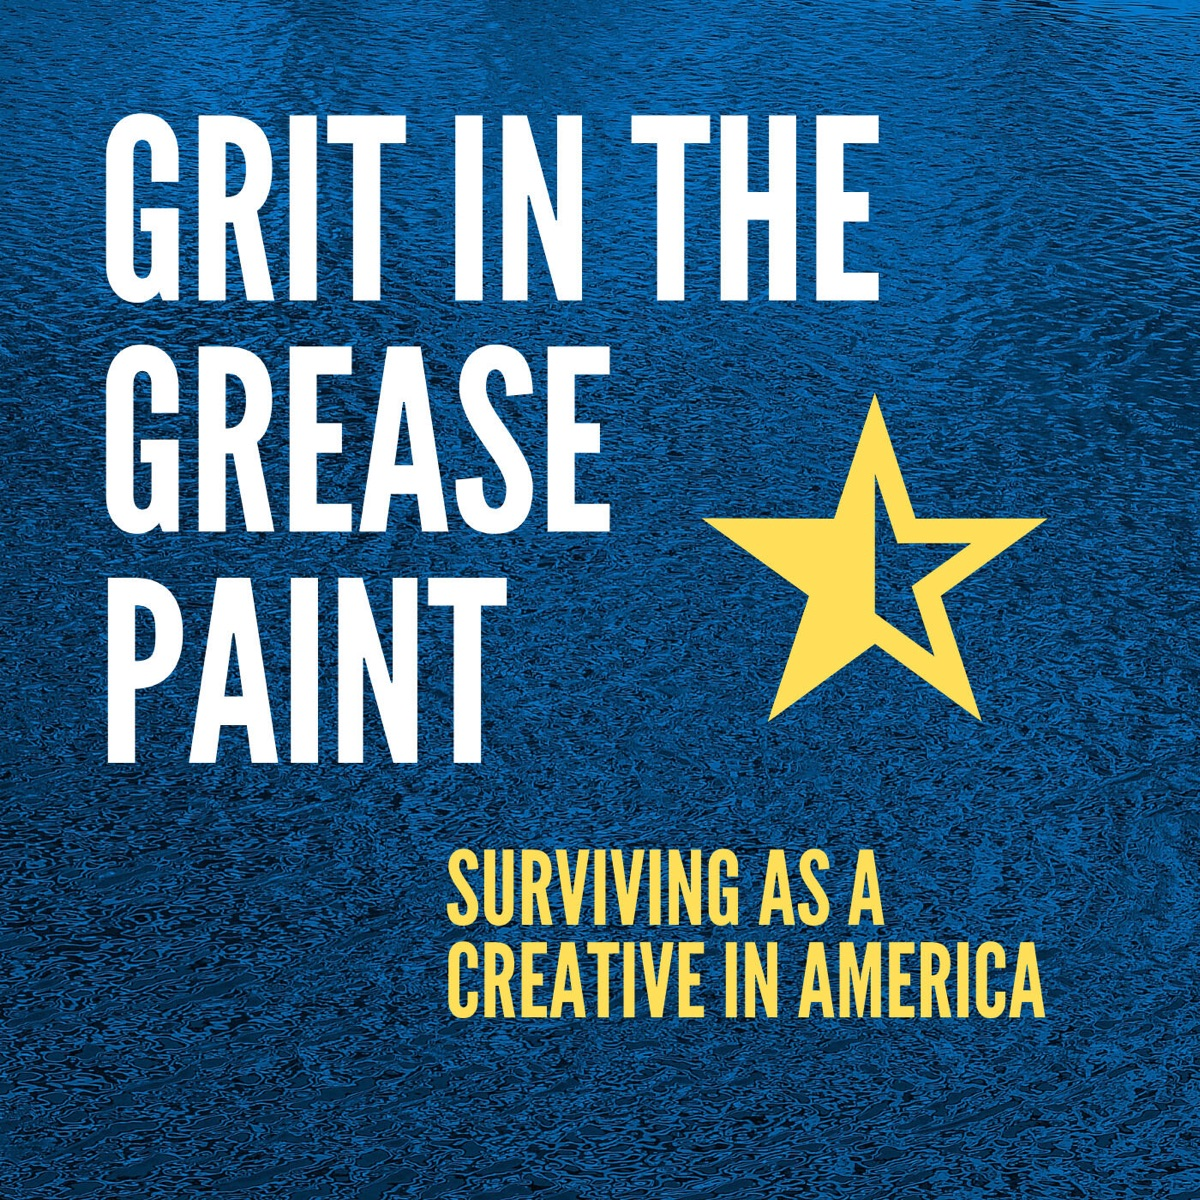 Grit in the Greasepaint